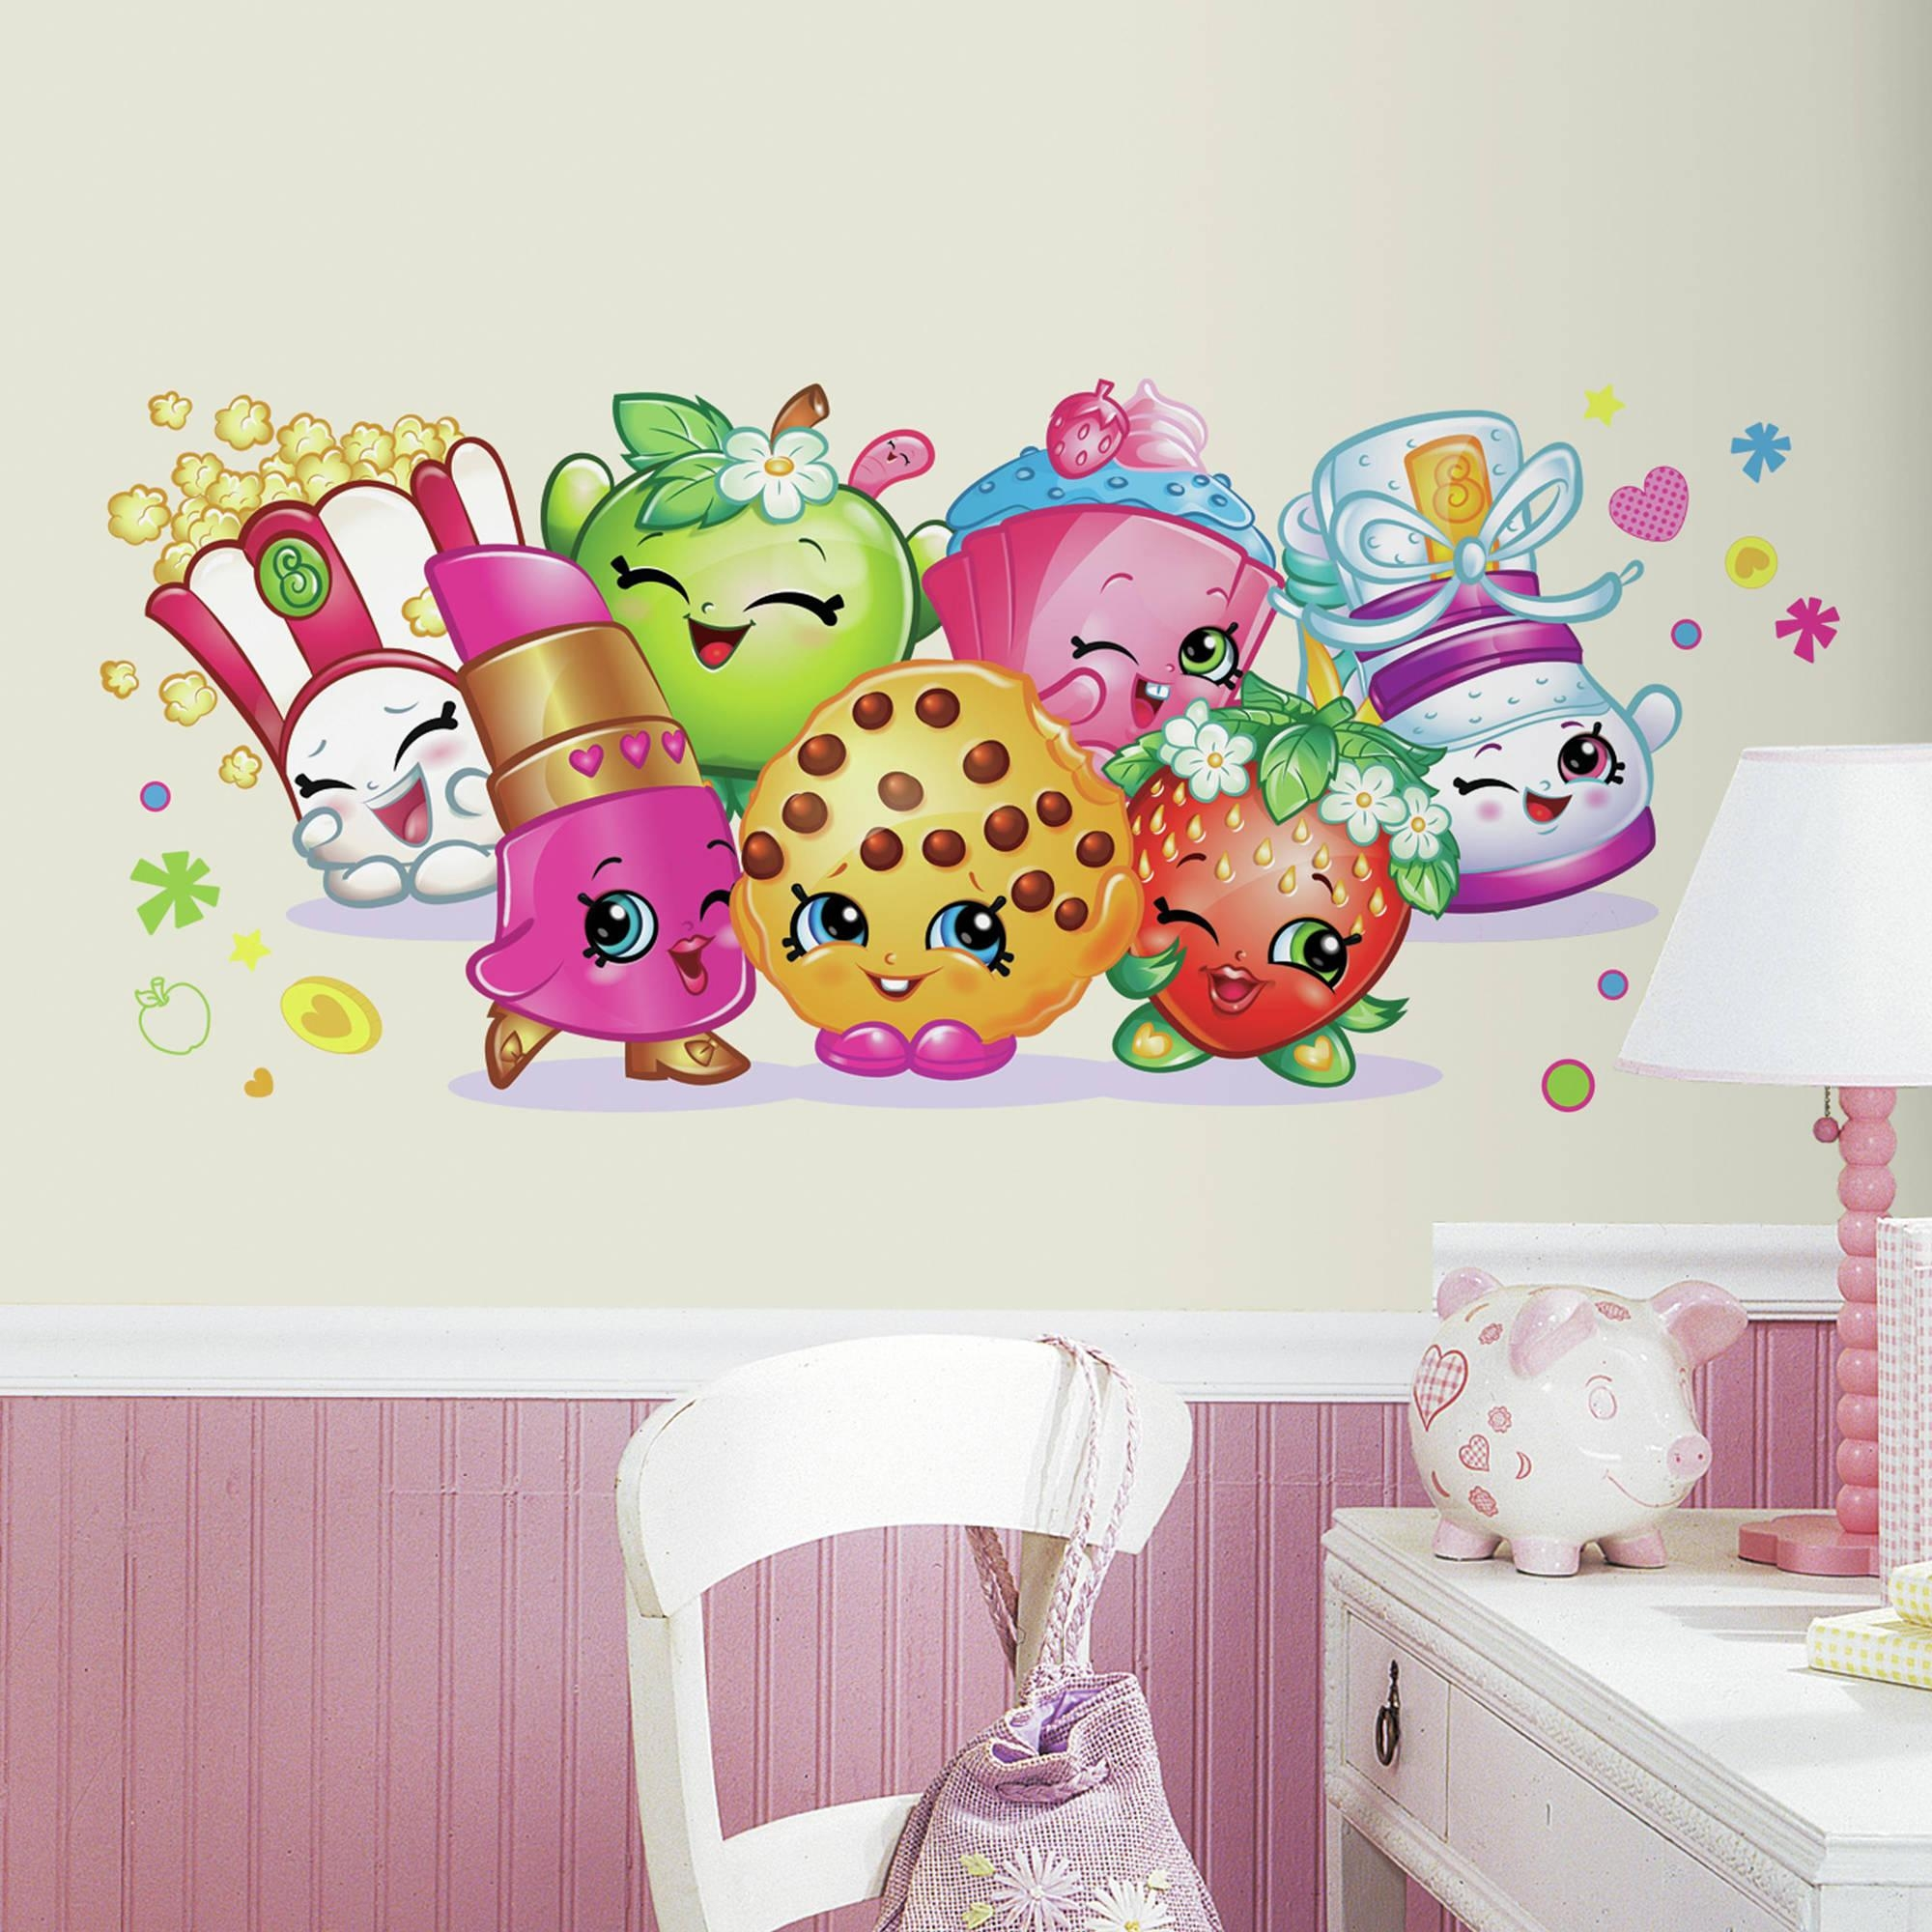 Roommates Shopkins Burst Peel And Stick Giant Wall Decals Inside Walmart Wall Stickers (Image 16 of 20)